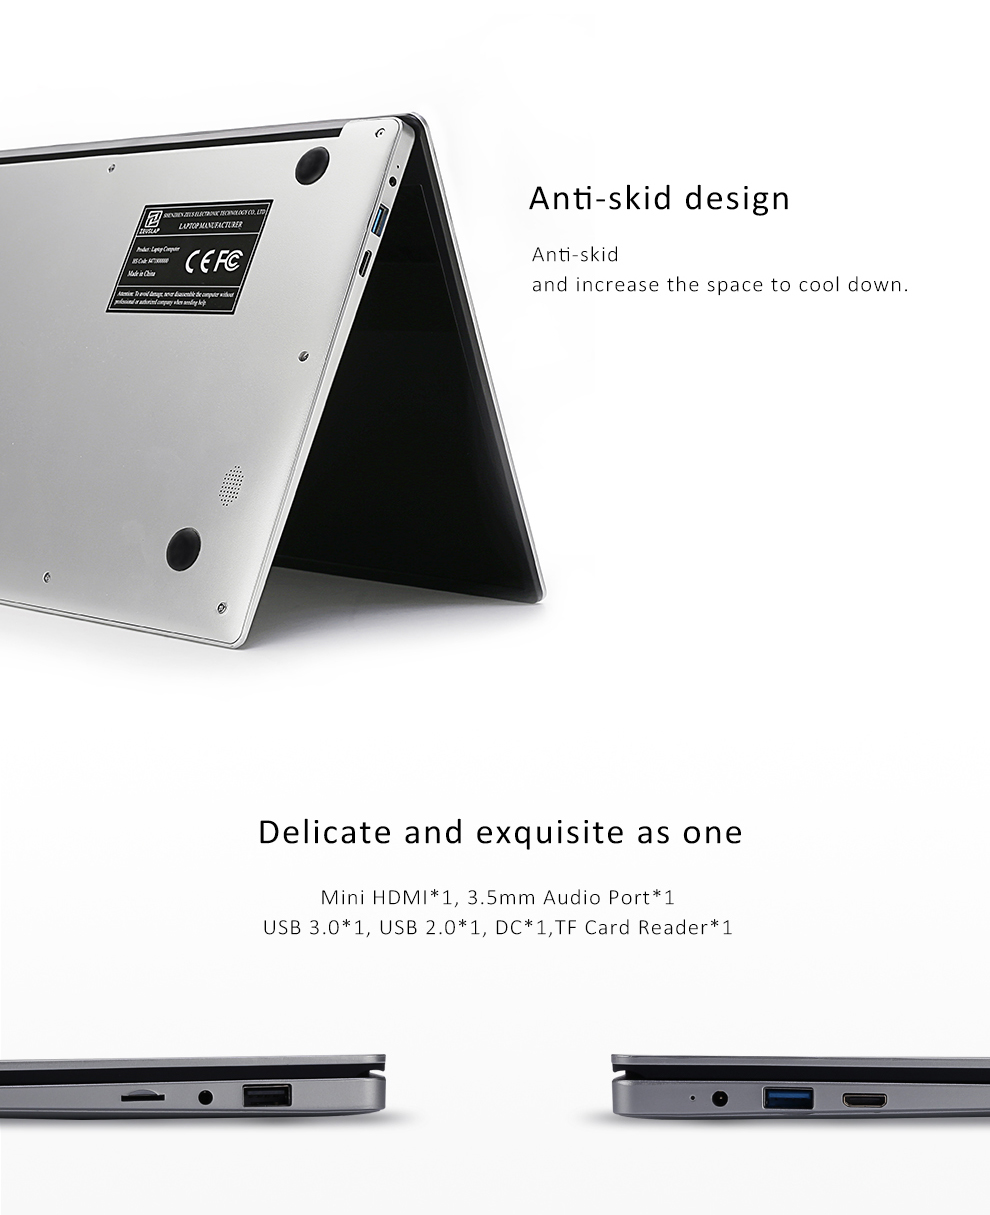 ZEUSLAP 15.6inch Intel Quad Core CPU 4GB Ram 64GB EMMC Windows 10 System 19*1080P IPS Screen Netbook Laptop Notebook Computer 12